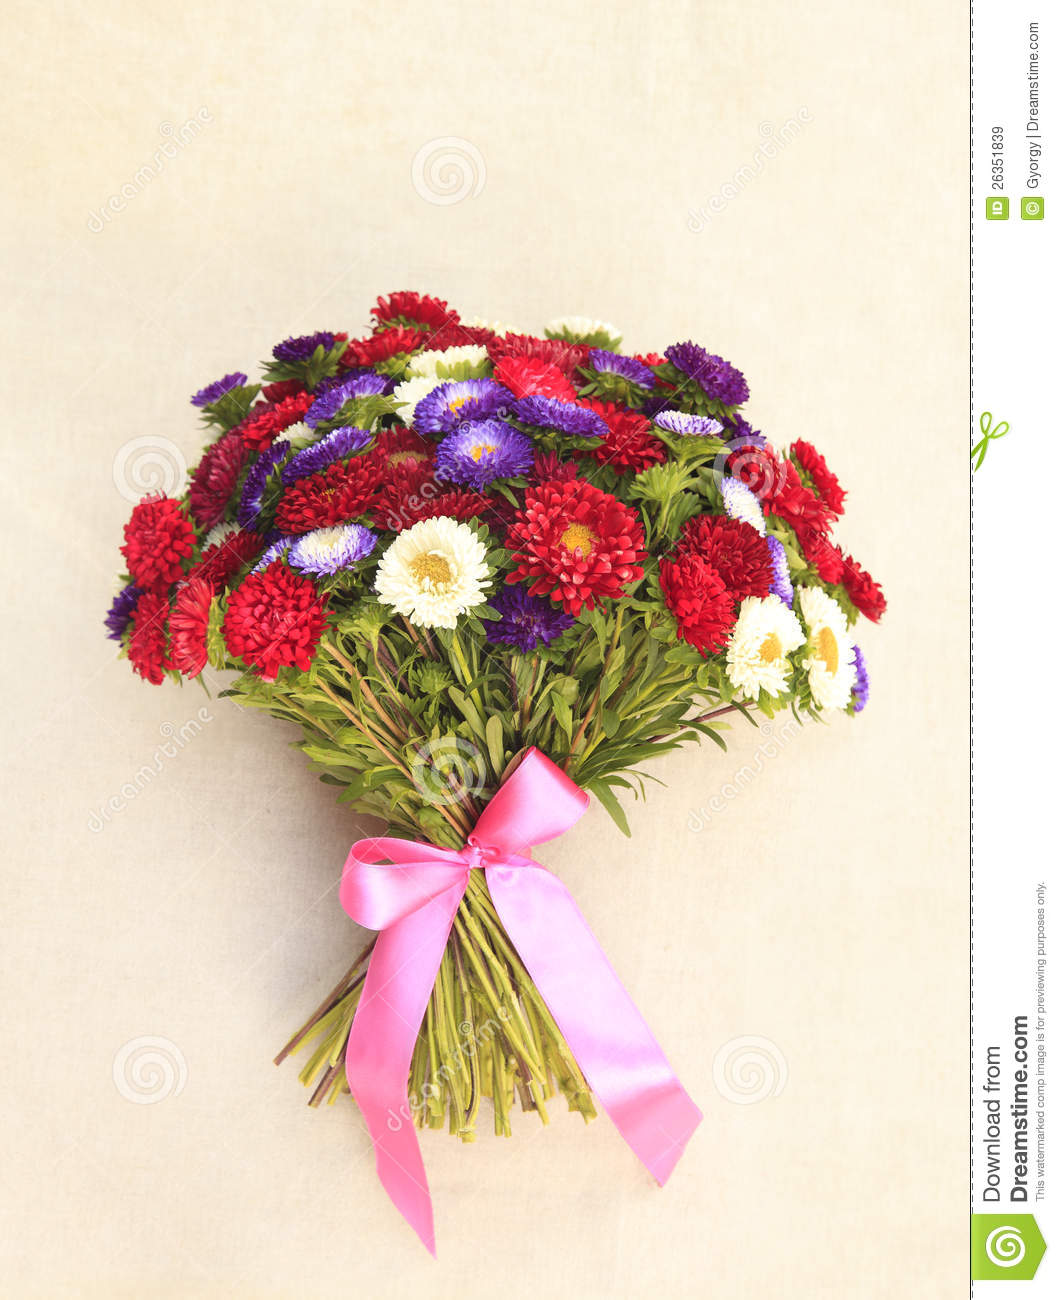 Free picture of bouquet of flowers jpg Flower Bouquet Royalty Free Stock Images - Image: 26351839 jpg